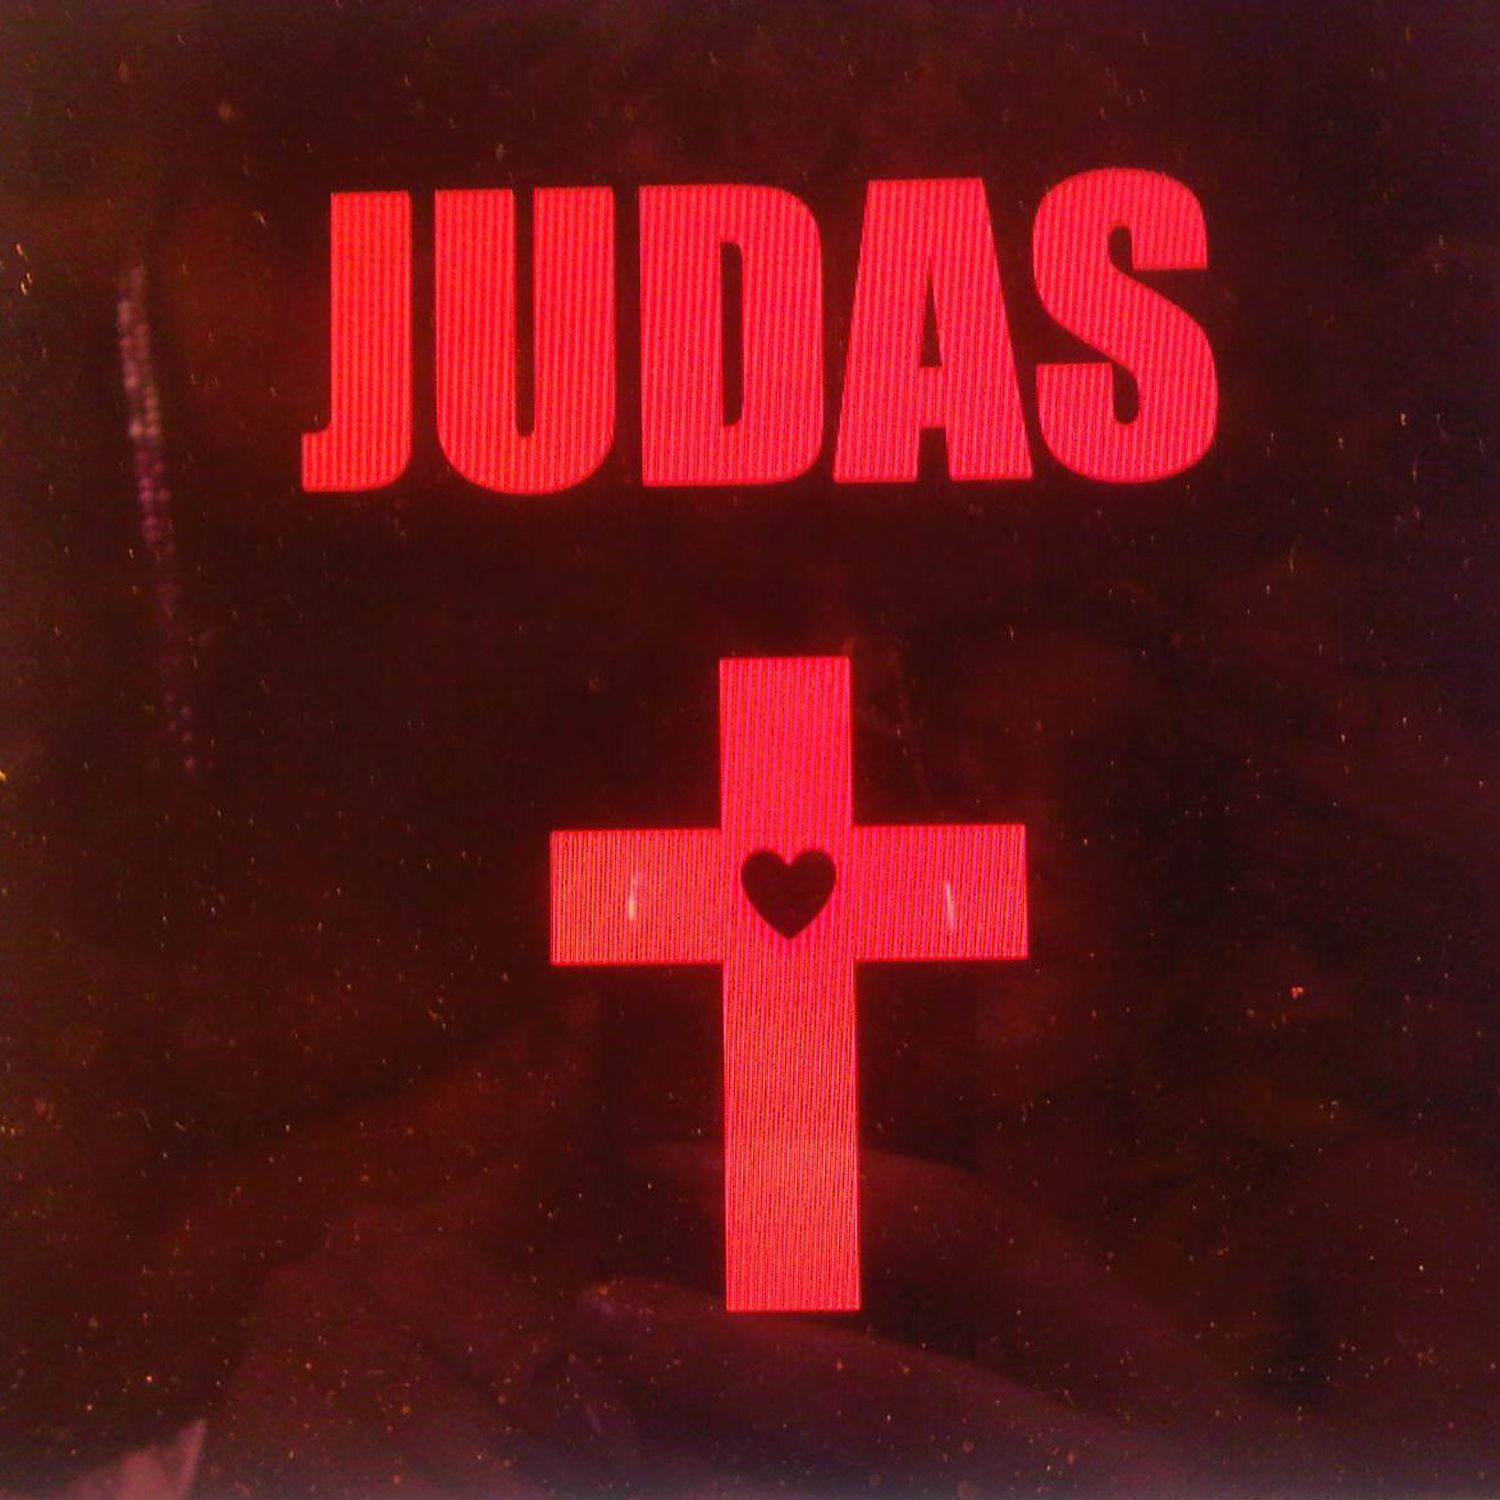 Judas-Single.png